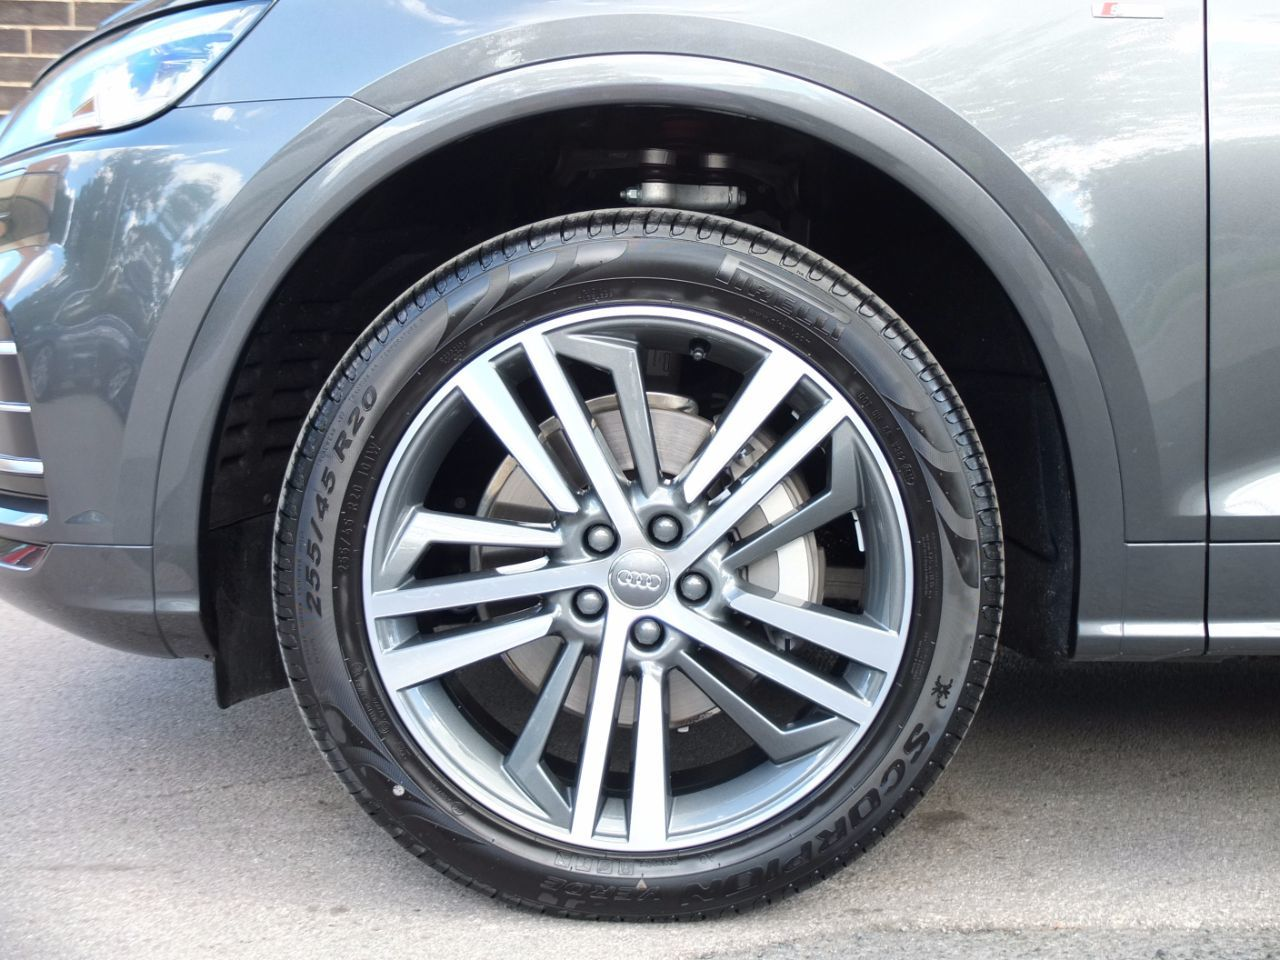 Audi Q5 2.0 TDI quattro S Line S tronic 190ps Estate Diesel Daytona Grey Metallic